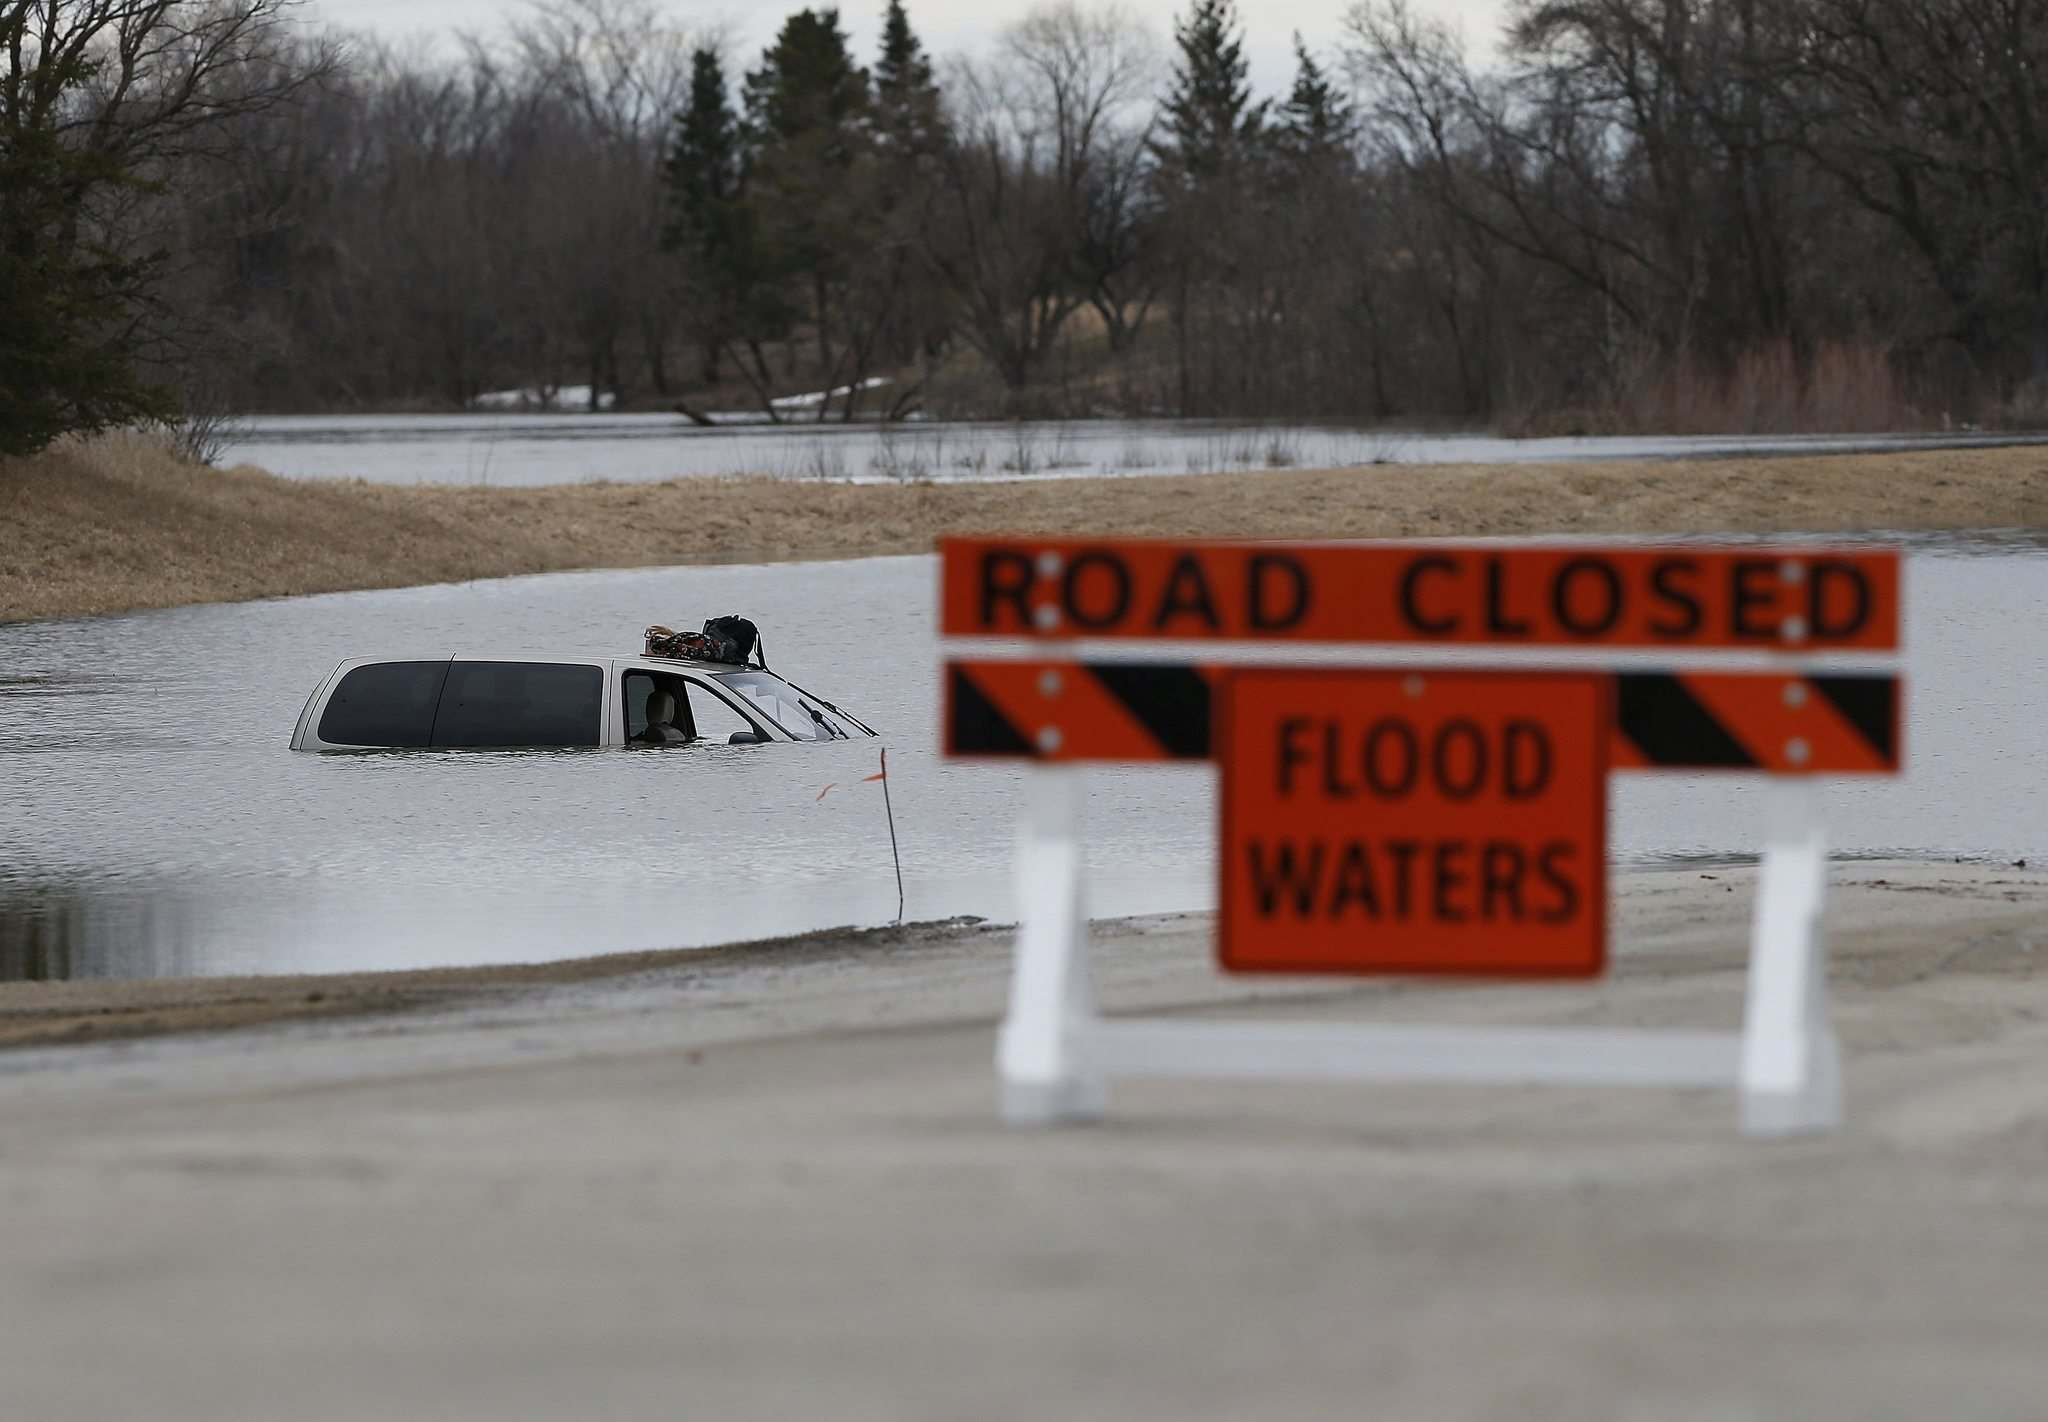 JOHN WOODS / WINNIPEG FREE PRESS</p><p>Red River Drive at Marchand Road in the R.M. of Richot had road closures due to water over the road on Sunday.</p>